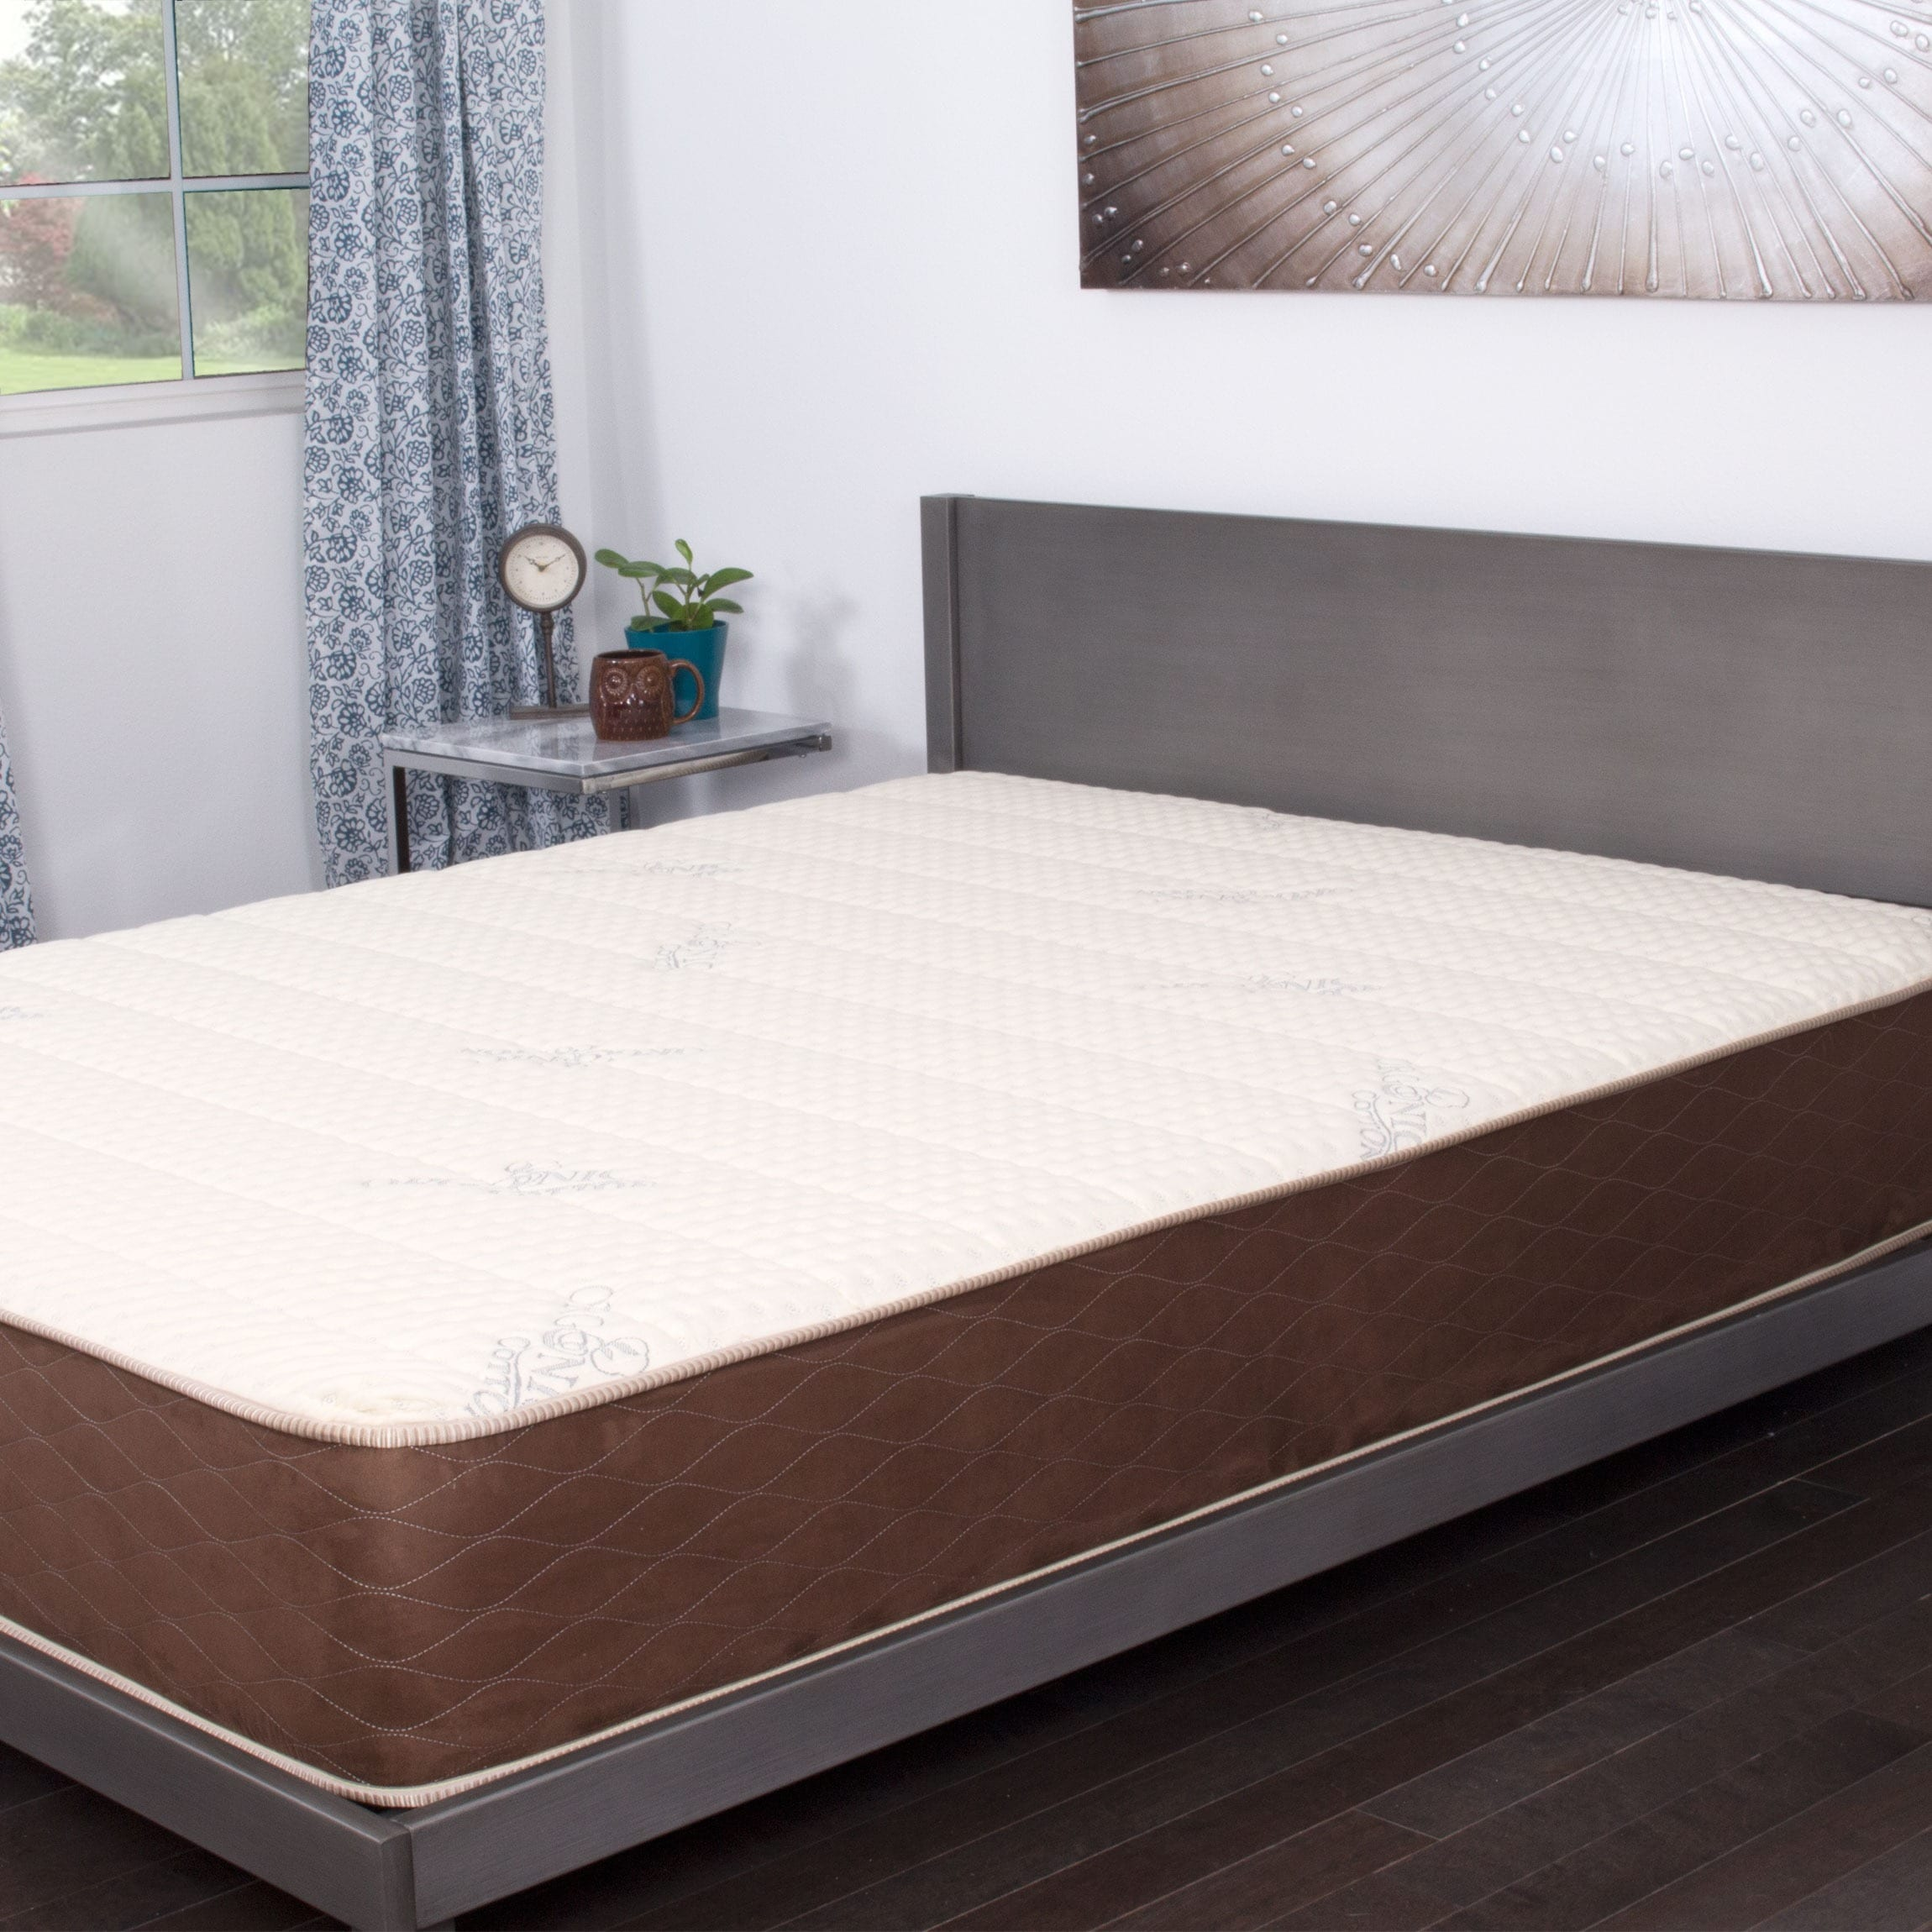 NuForm Allure Talalay Latex Soft Medium Firm 11 inch Queen size